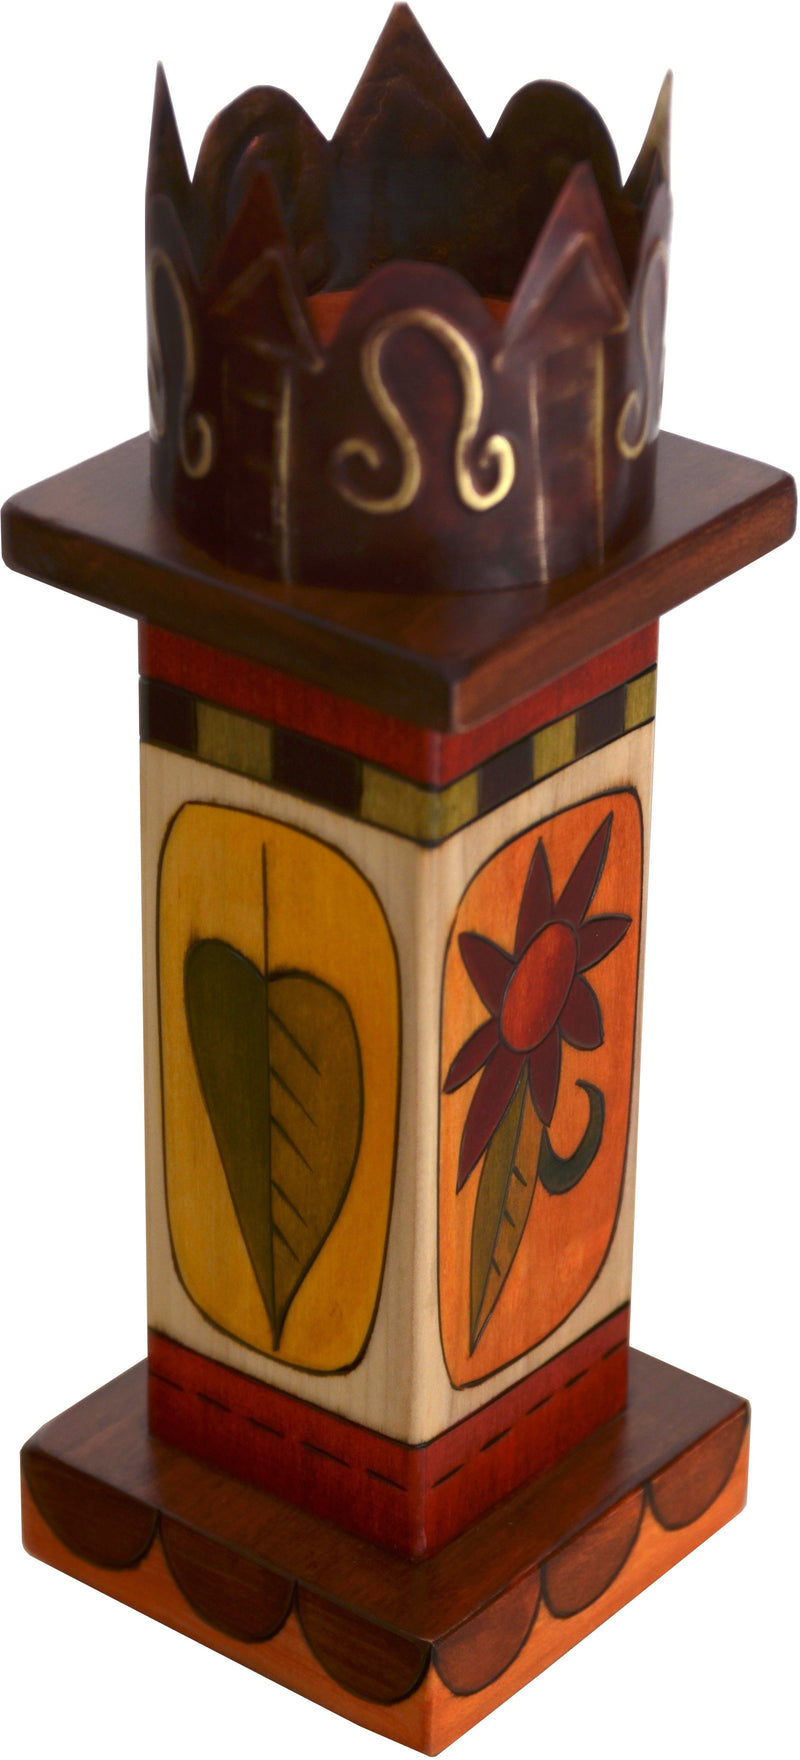 Small Pillar Candle Holder –  Colorful block icon candle holder with unique stamped metal element